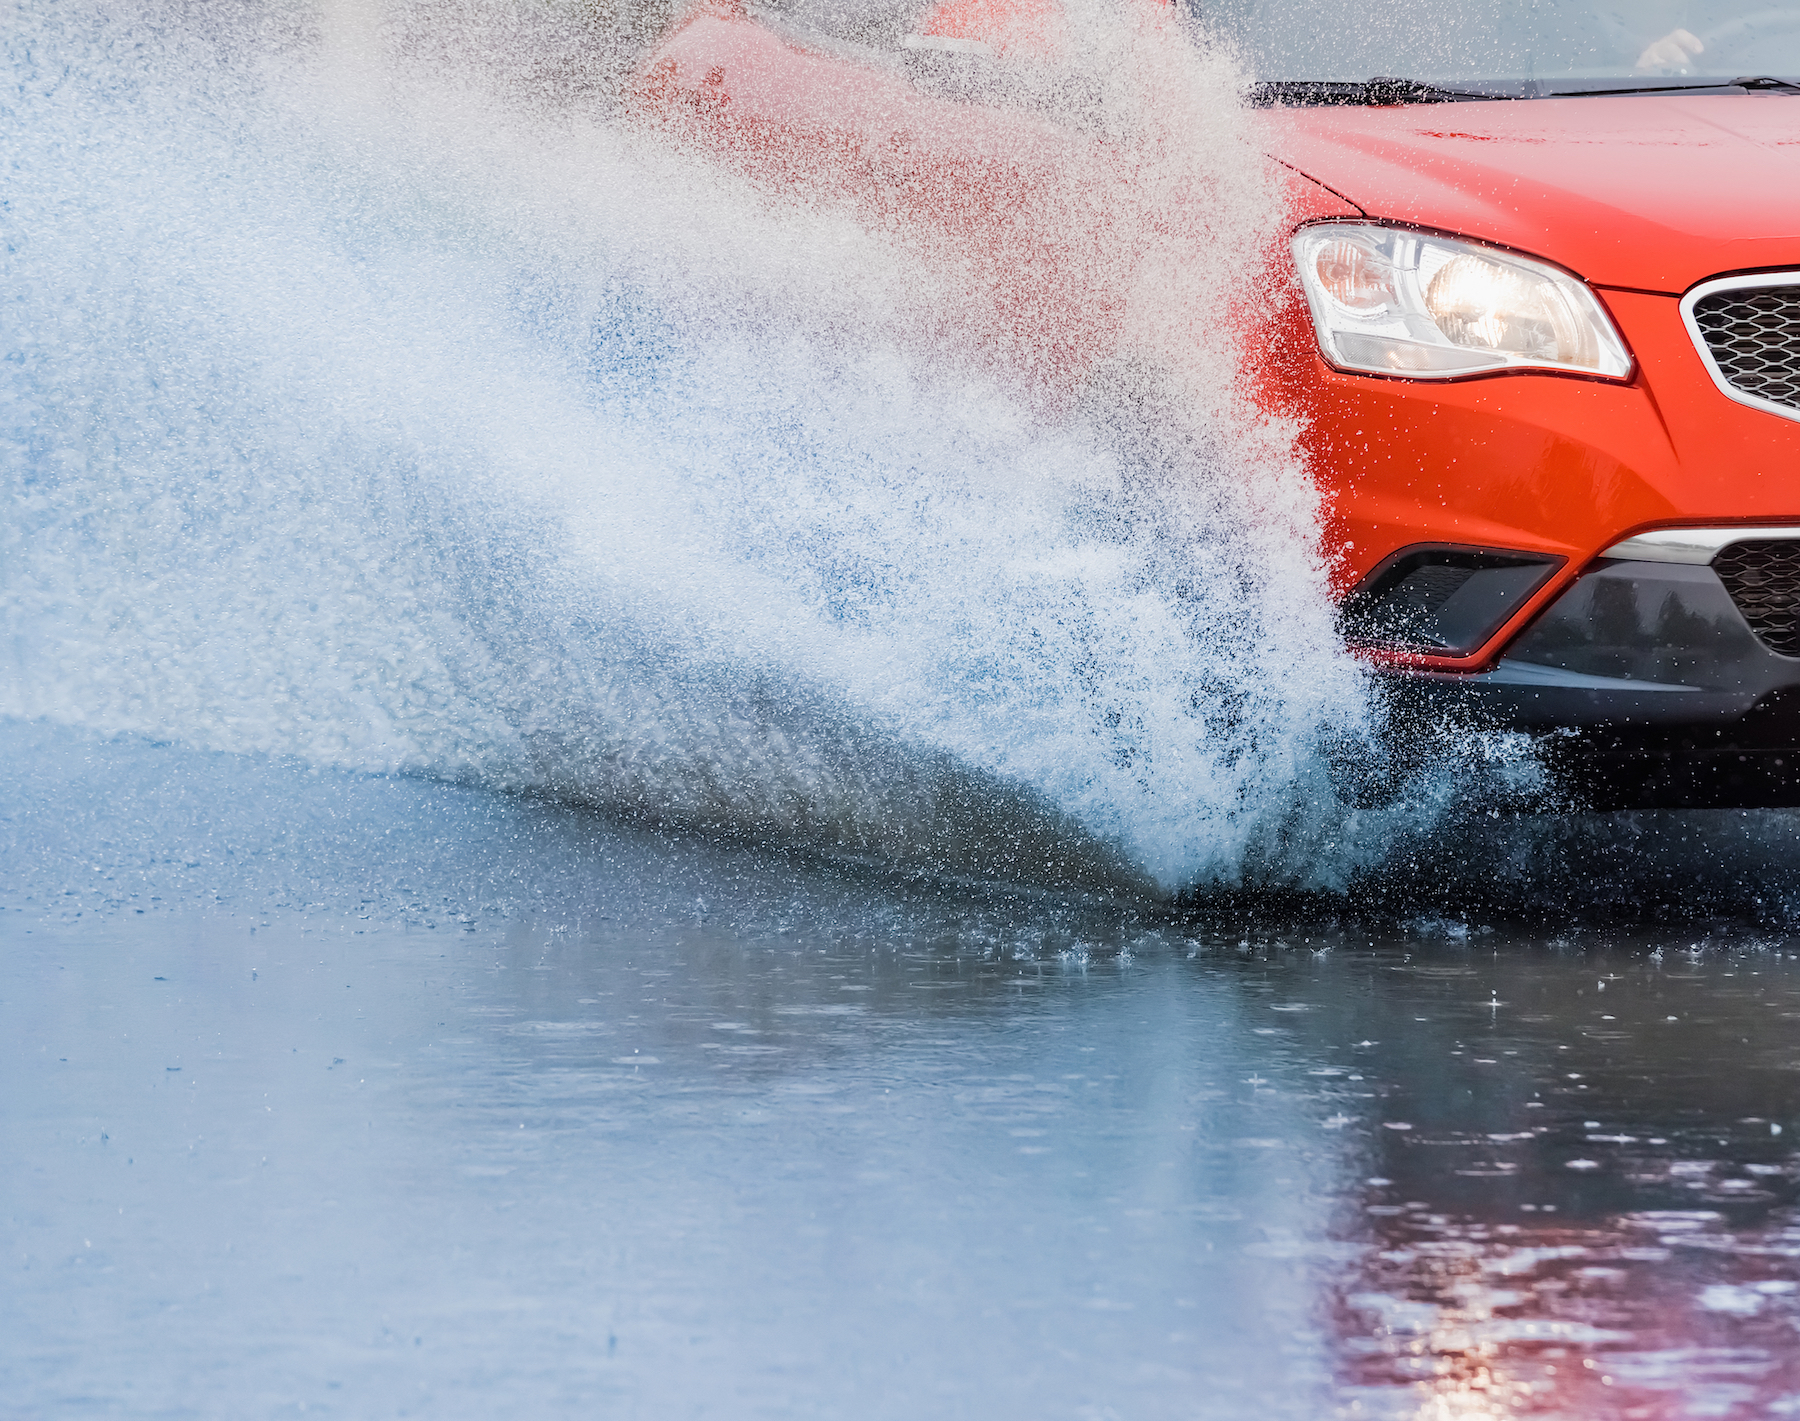 Getting splashed by cars